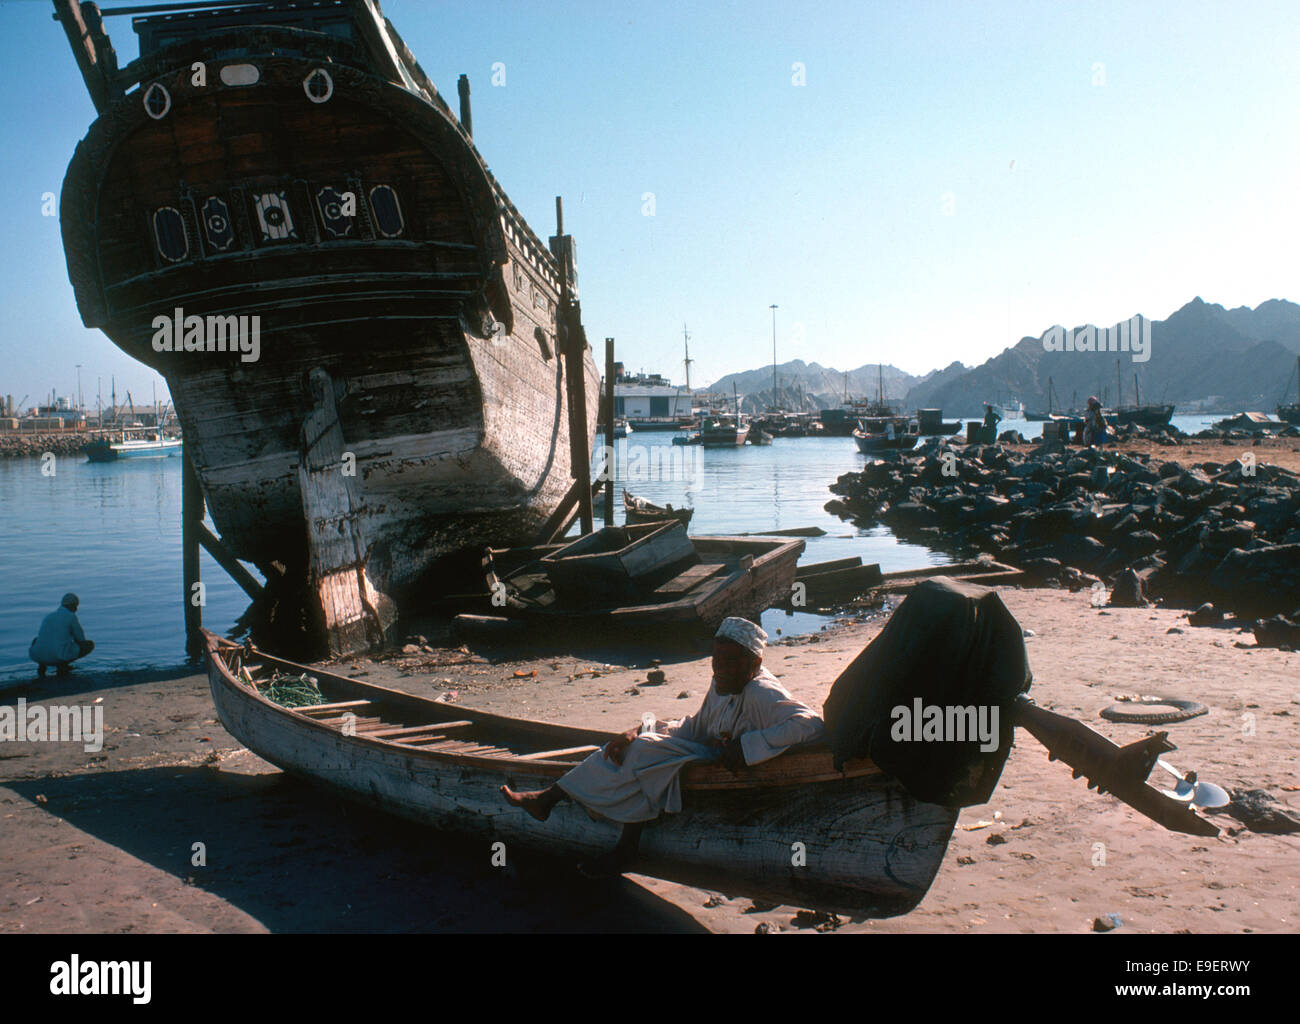 Change in Muttrah, ancient baghala and an outboard motor on a fishing boat, Oman 1975 - Stock Image